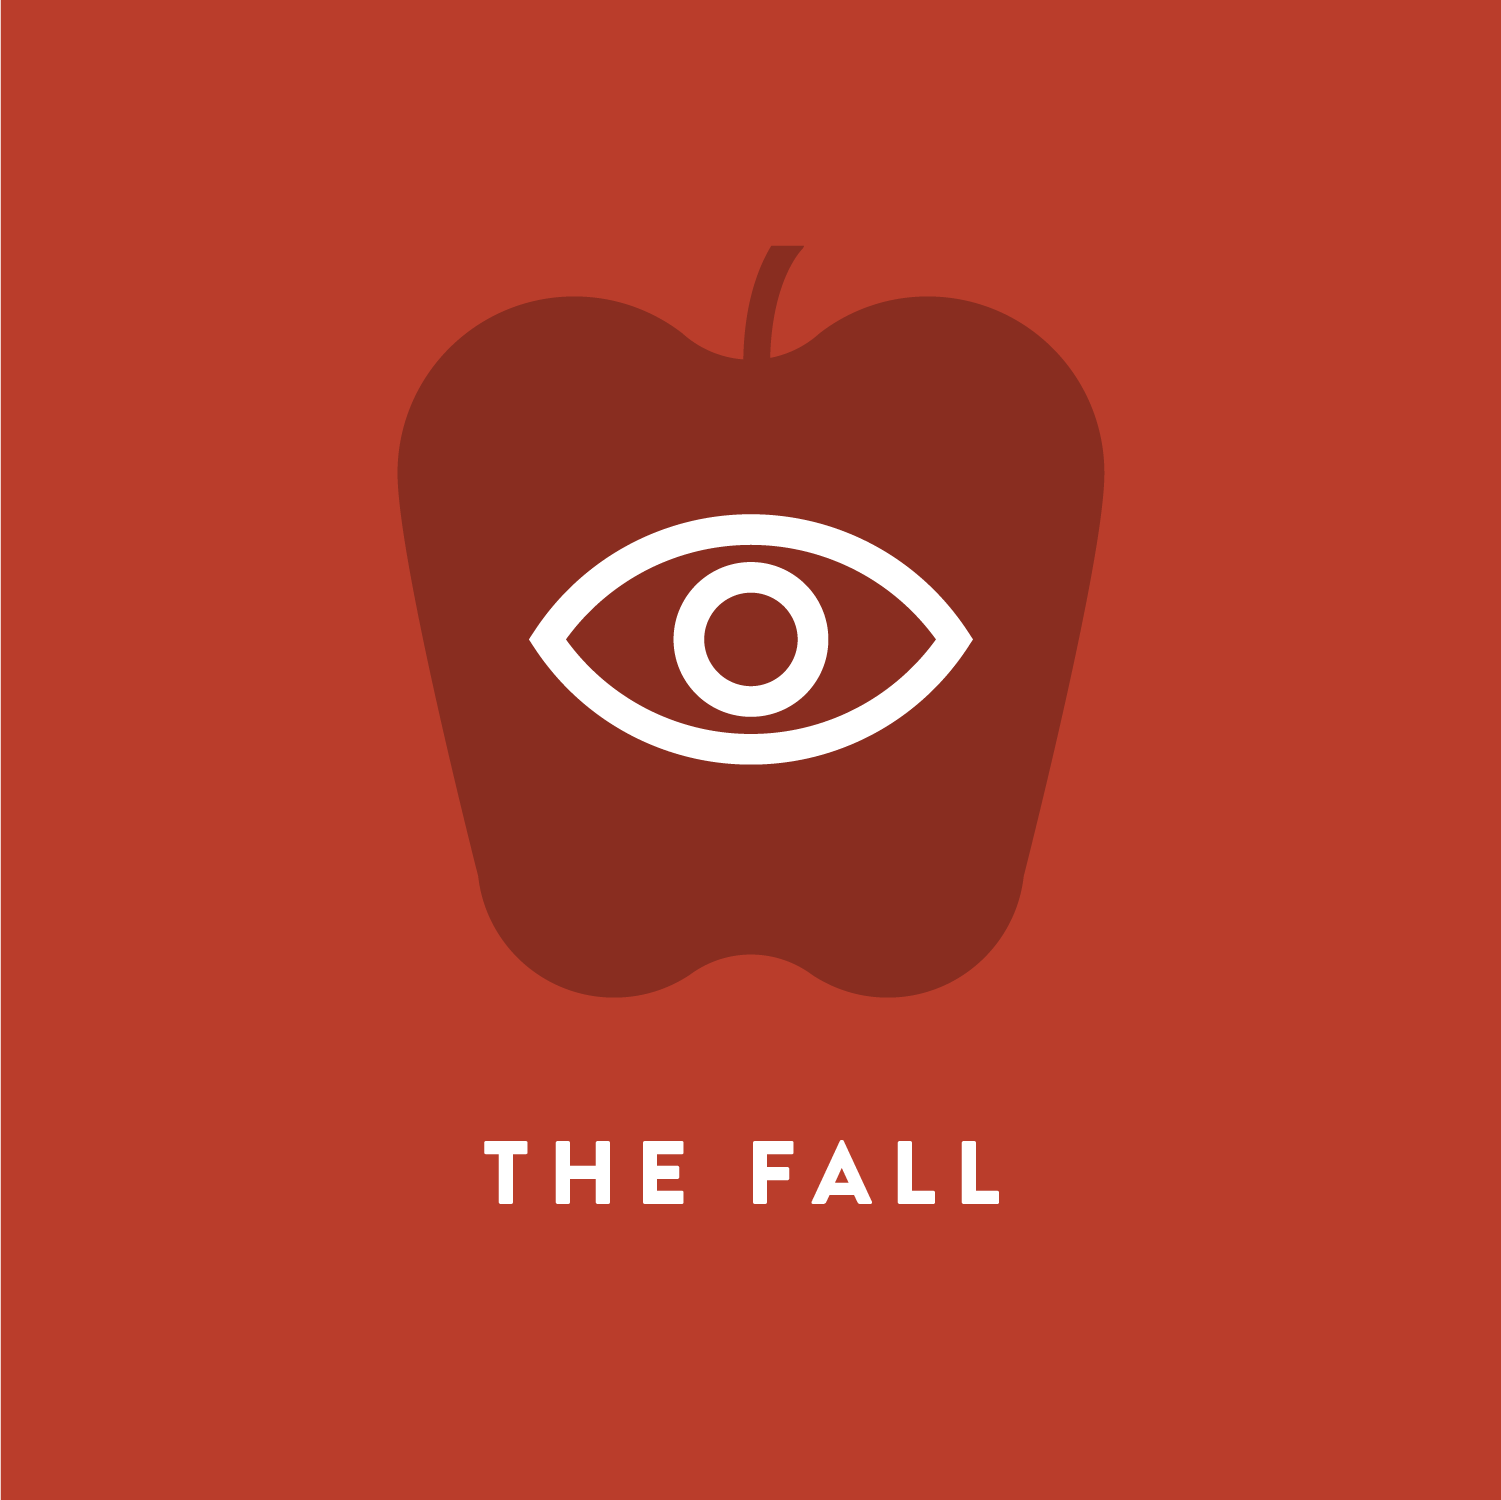 Biblicons_The-Fall_1x1.png